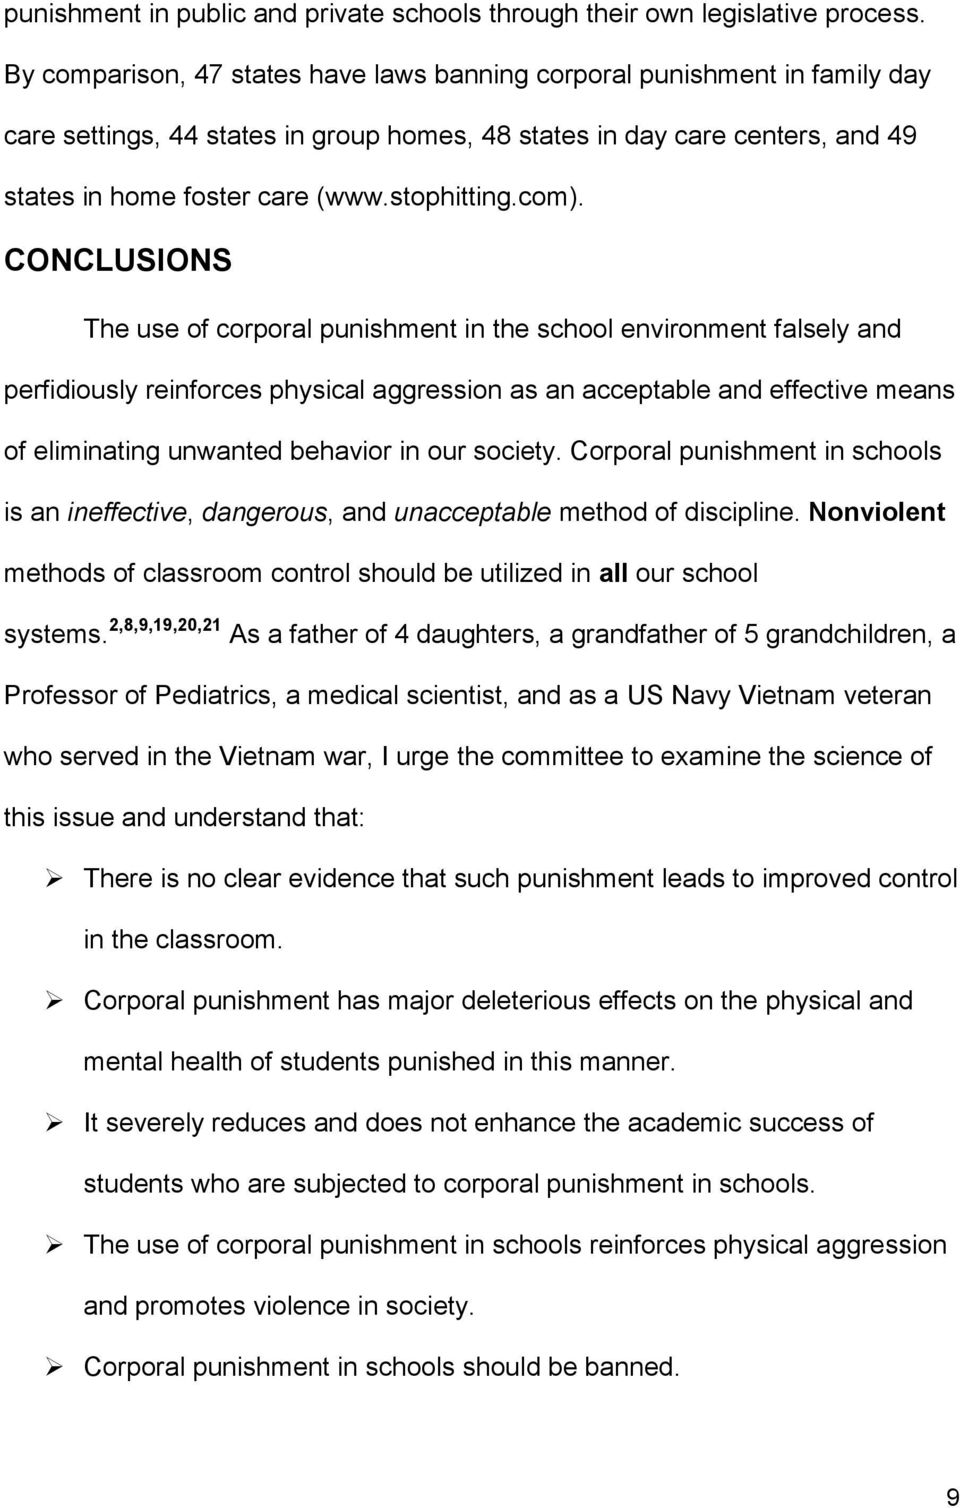 emotional effects of corporal punishment